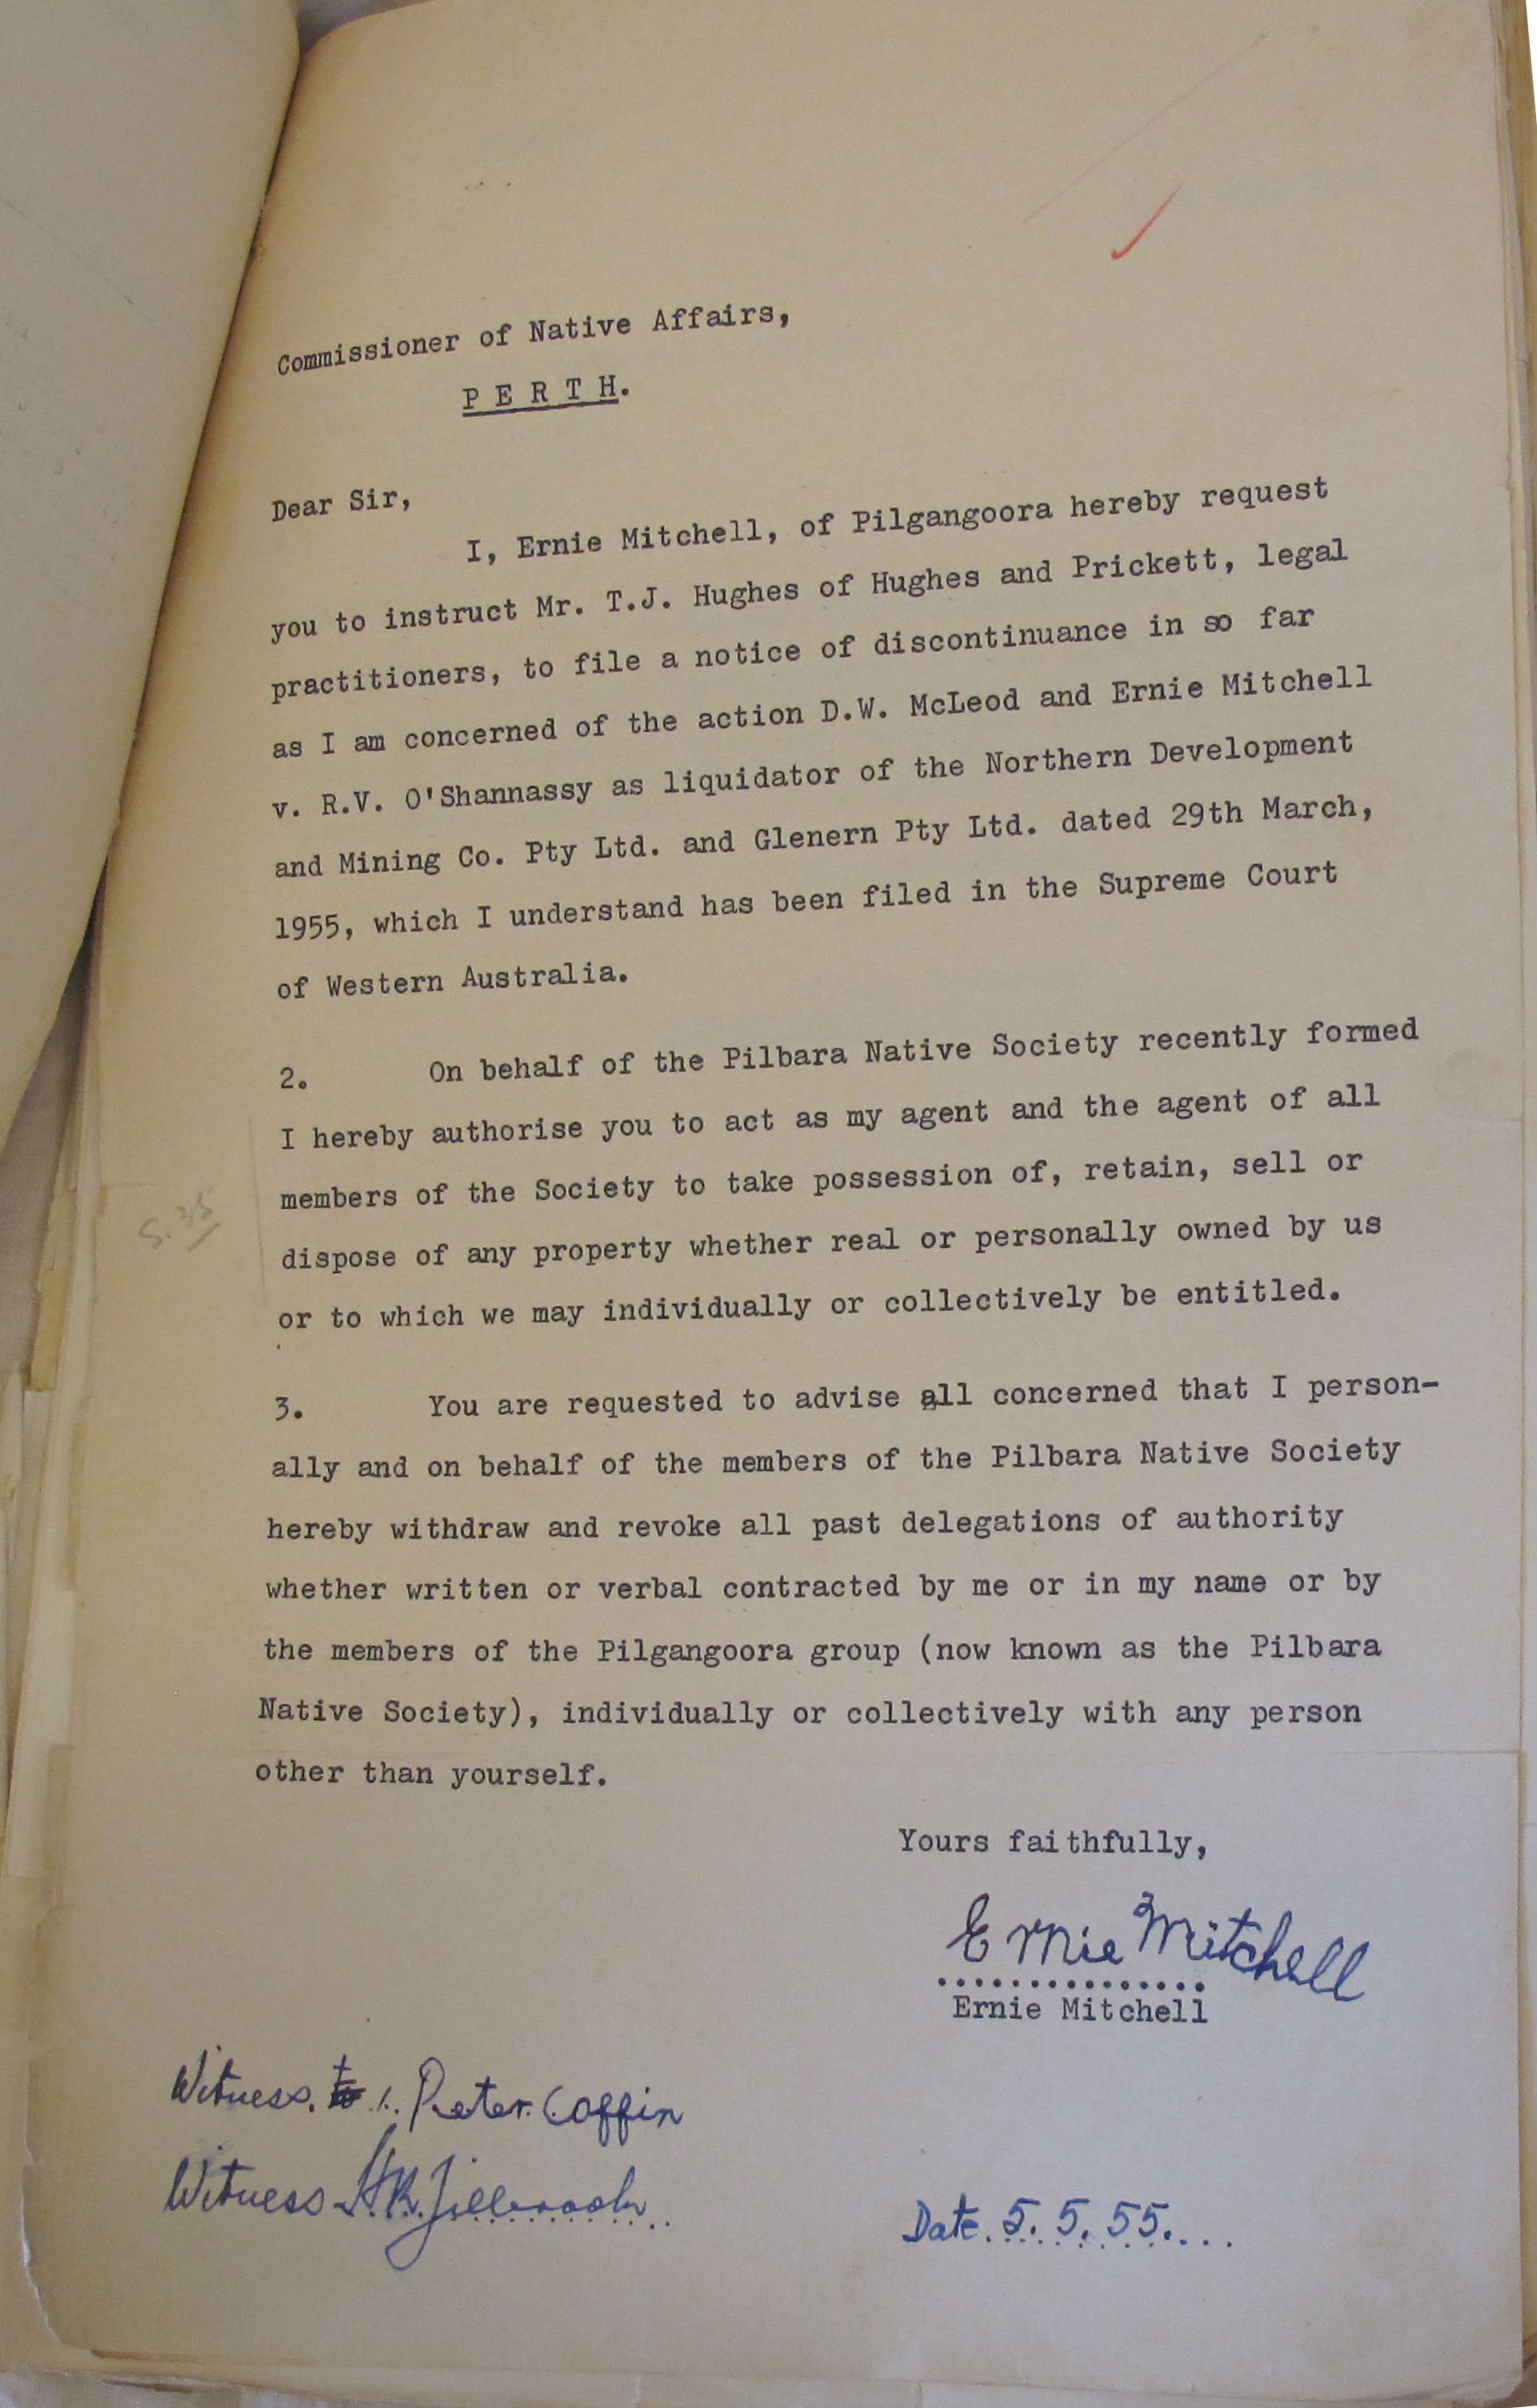 Mitchell to Middleton, 5 May 1955